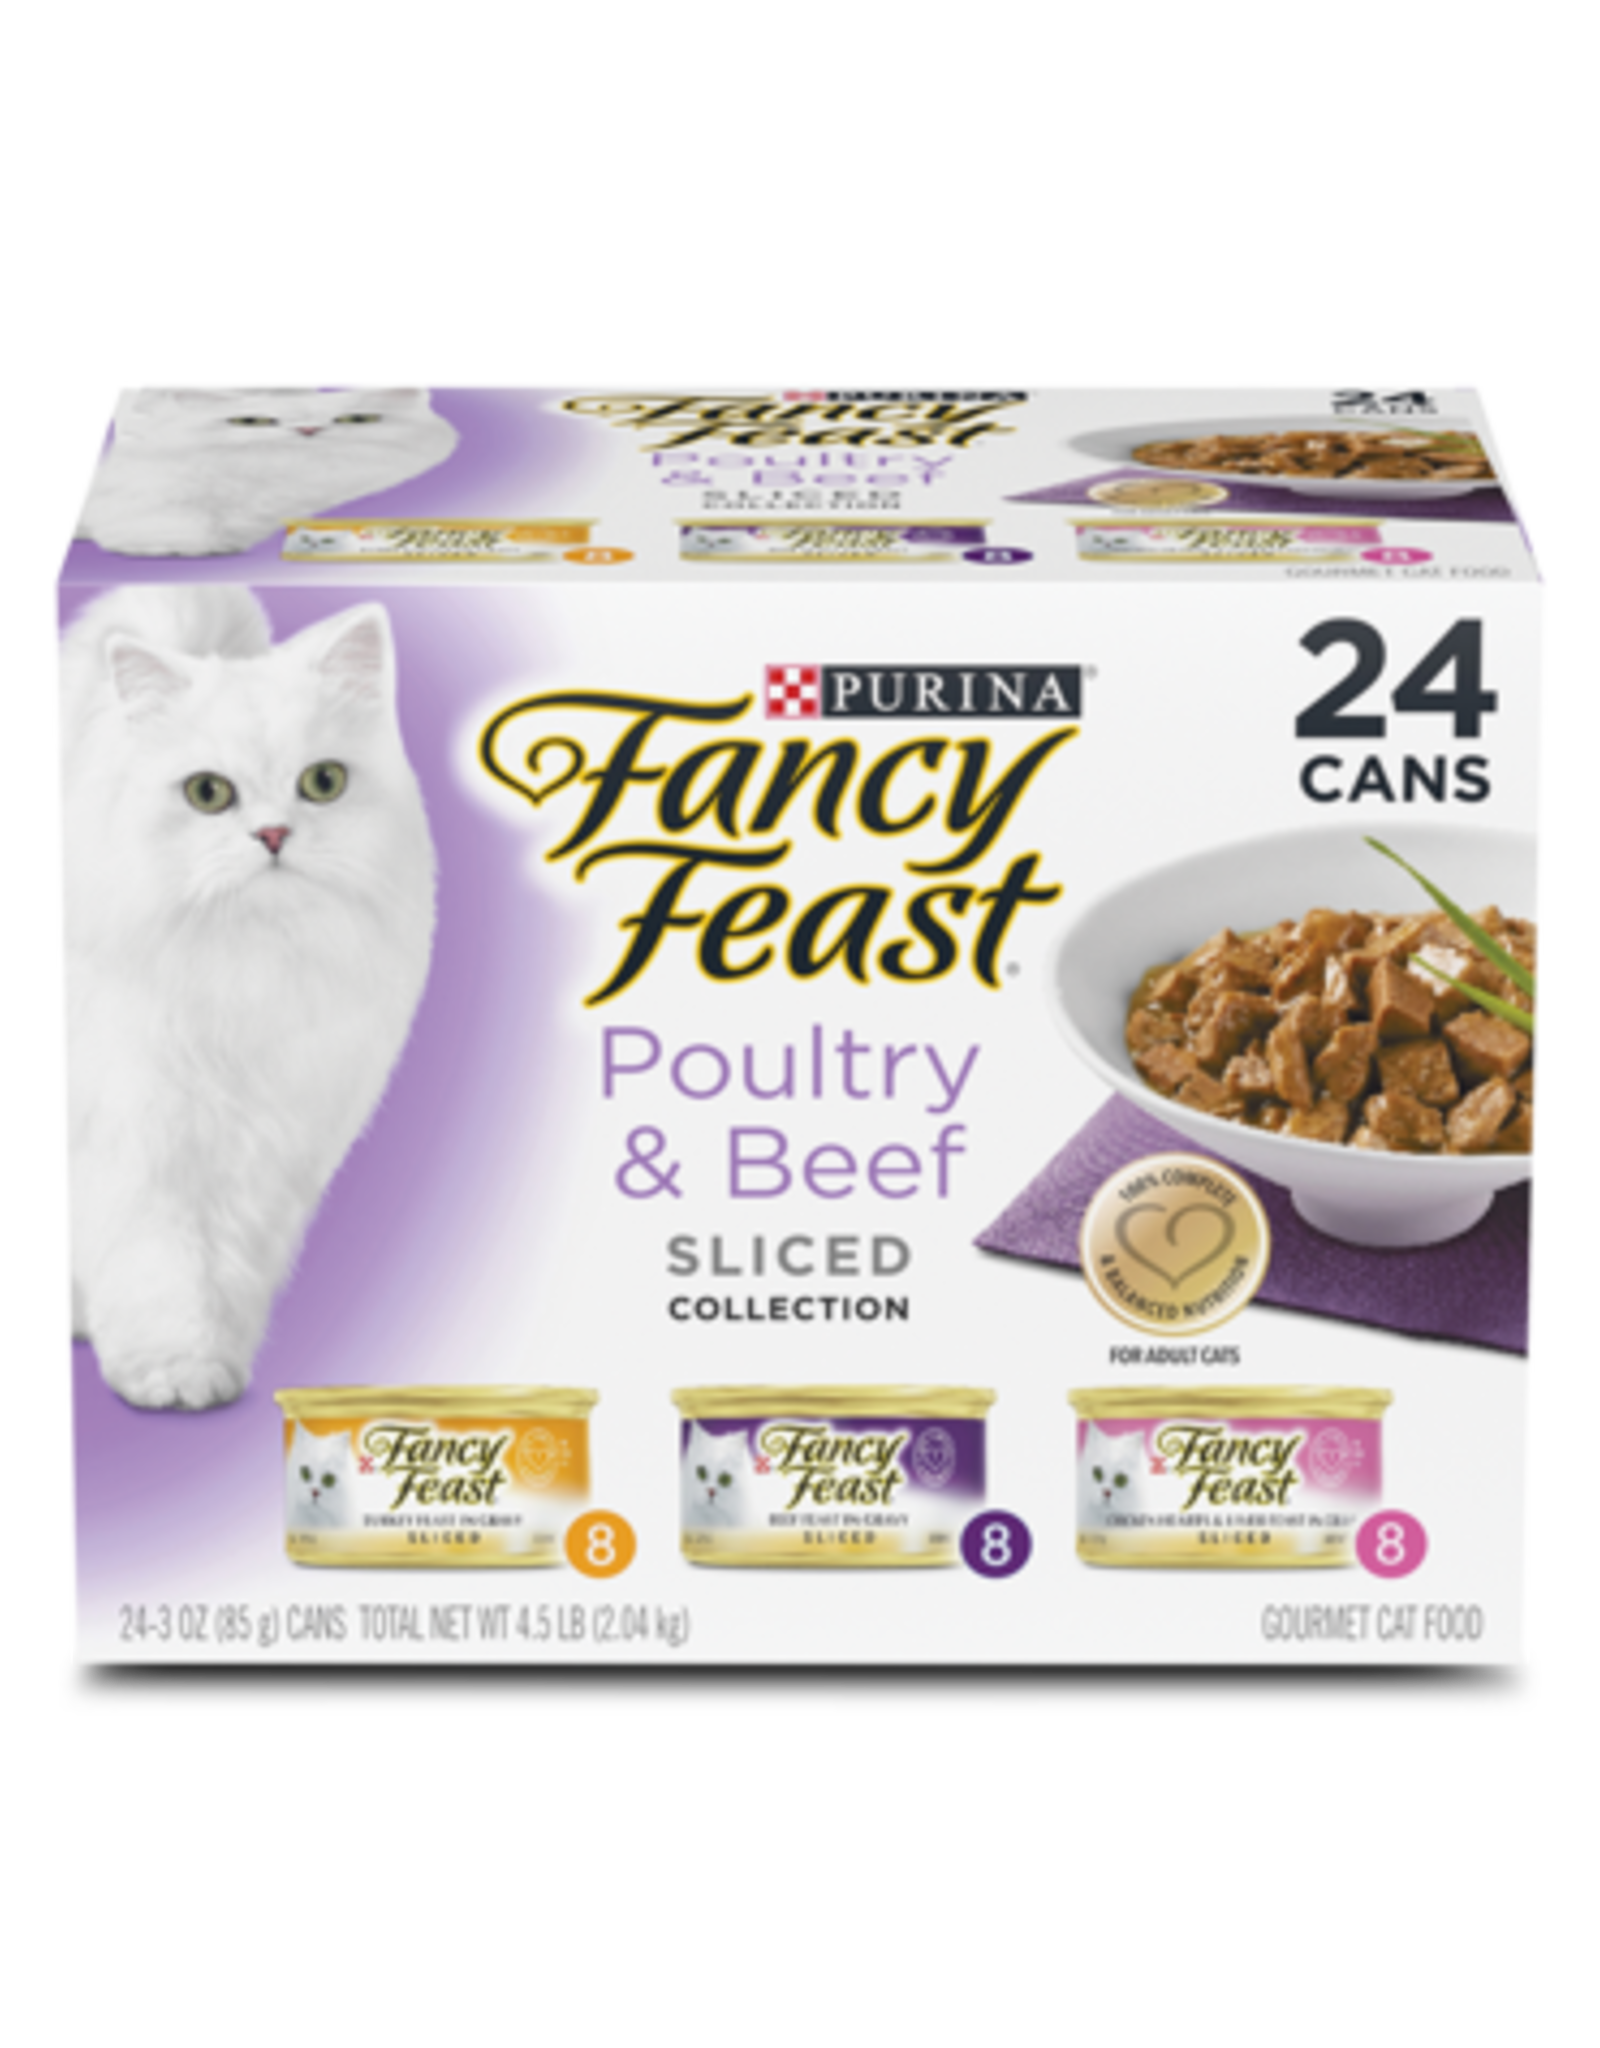 FANCY FEAST POULTRY & BEEF SLICED VARIETY CANS 24 PACK